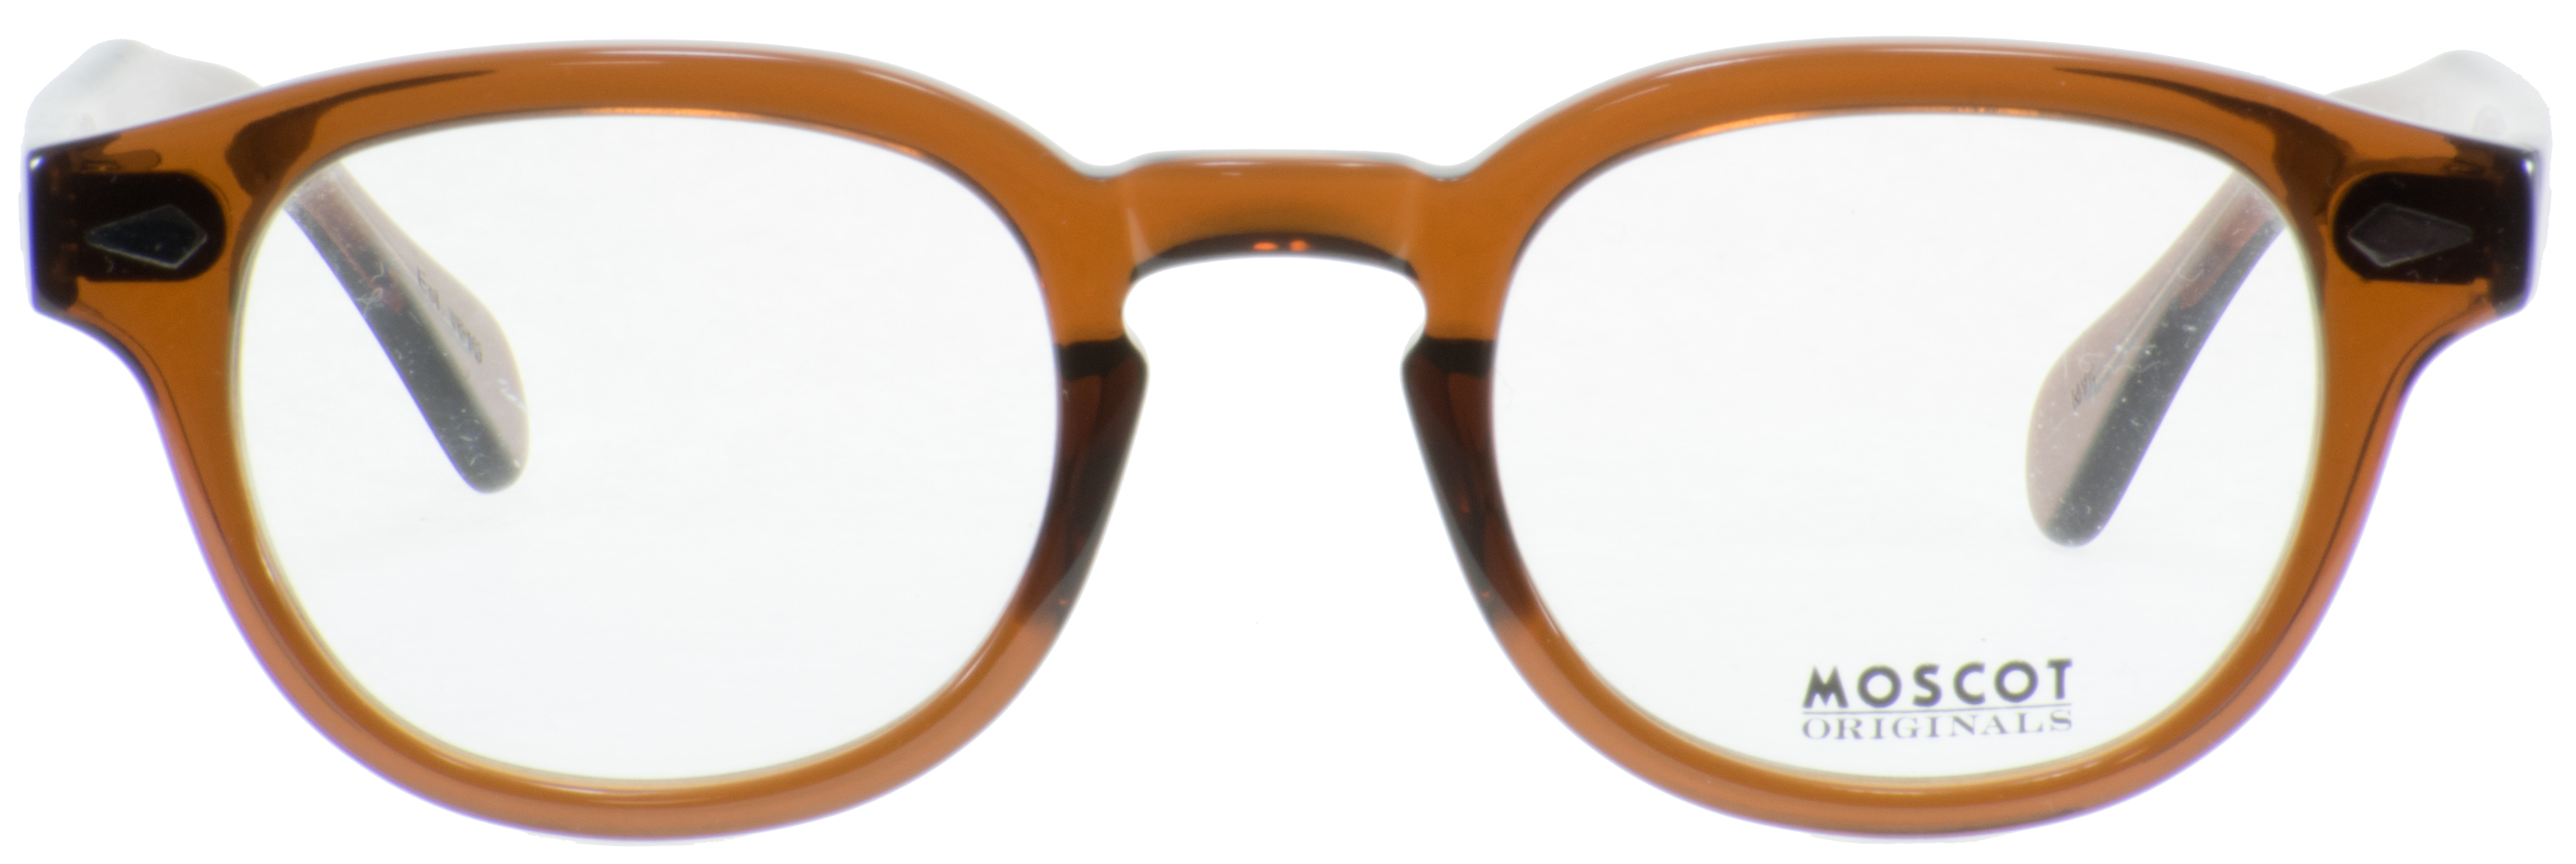 MOSCOT LEMTOSH 46 BROWN1060030601